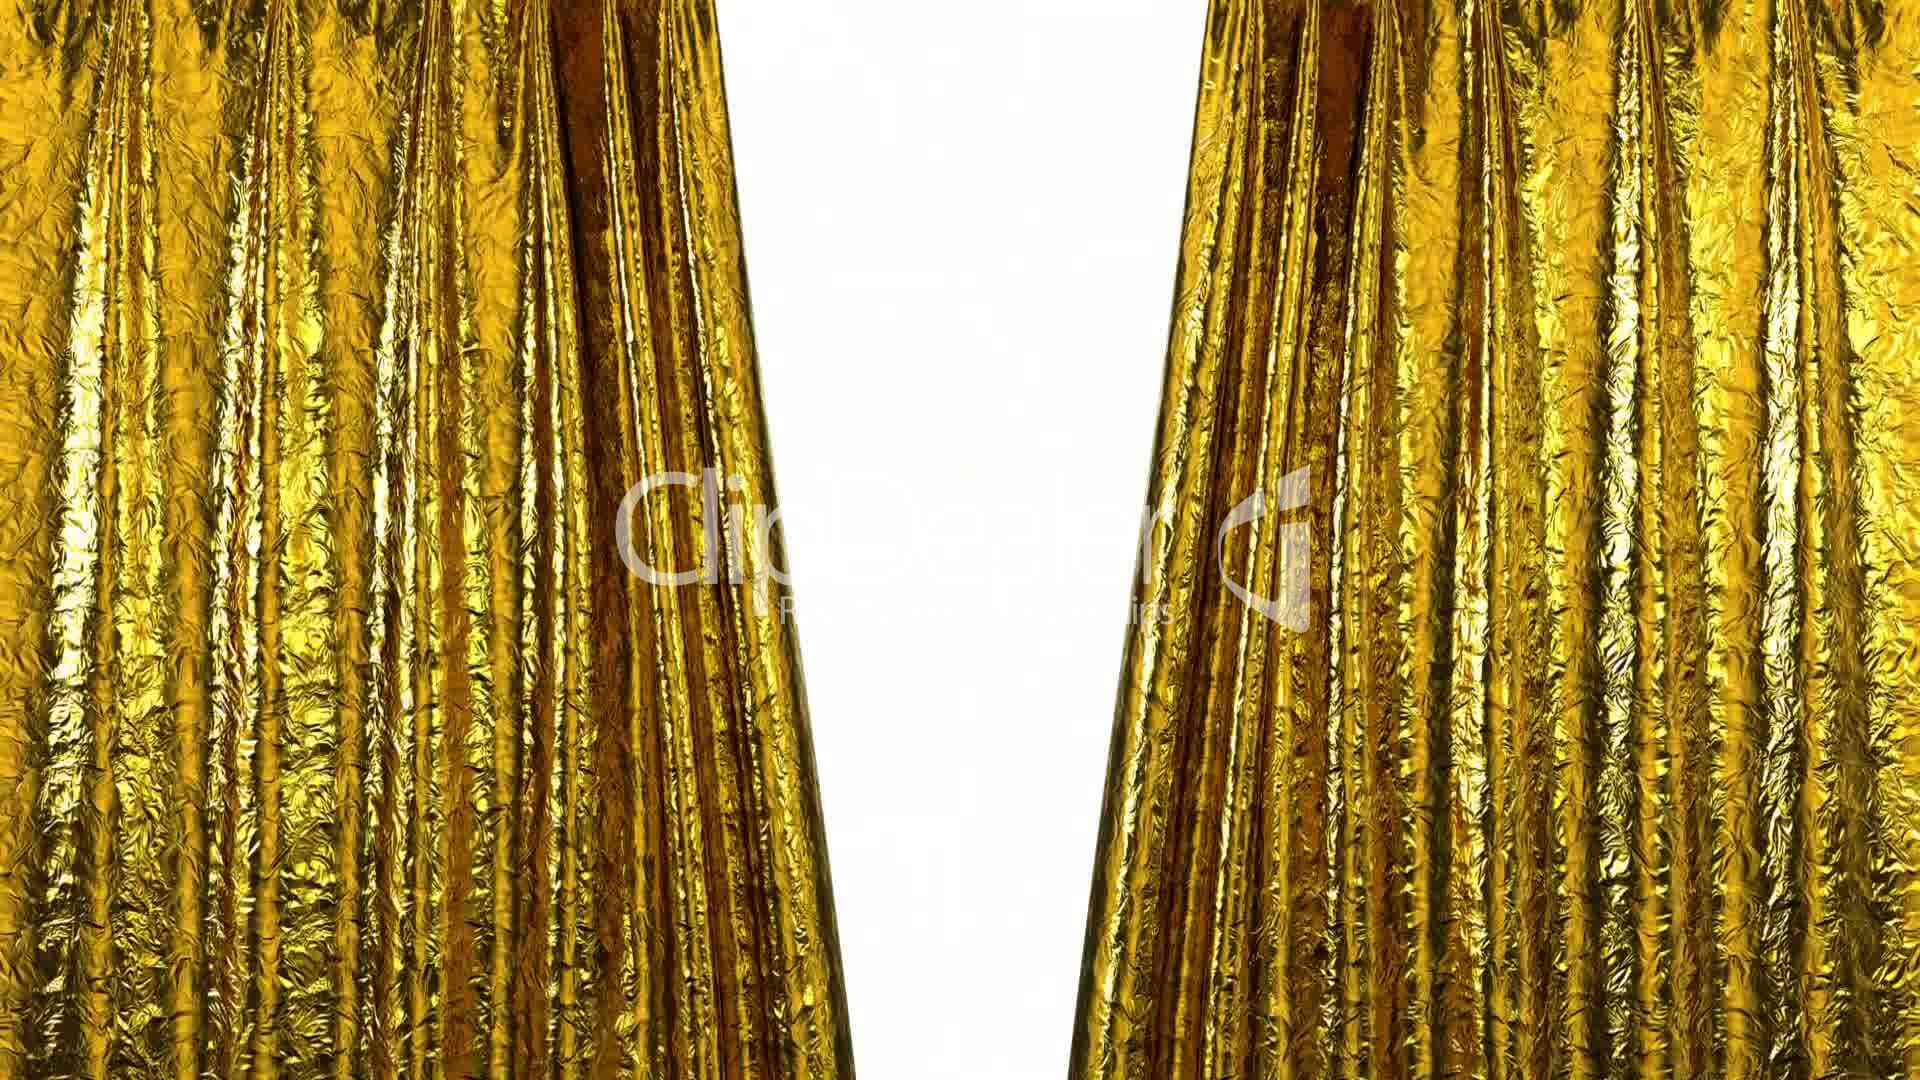 Curtain Opening Gold Hd Royalty Free Video And Stock Footage